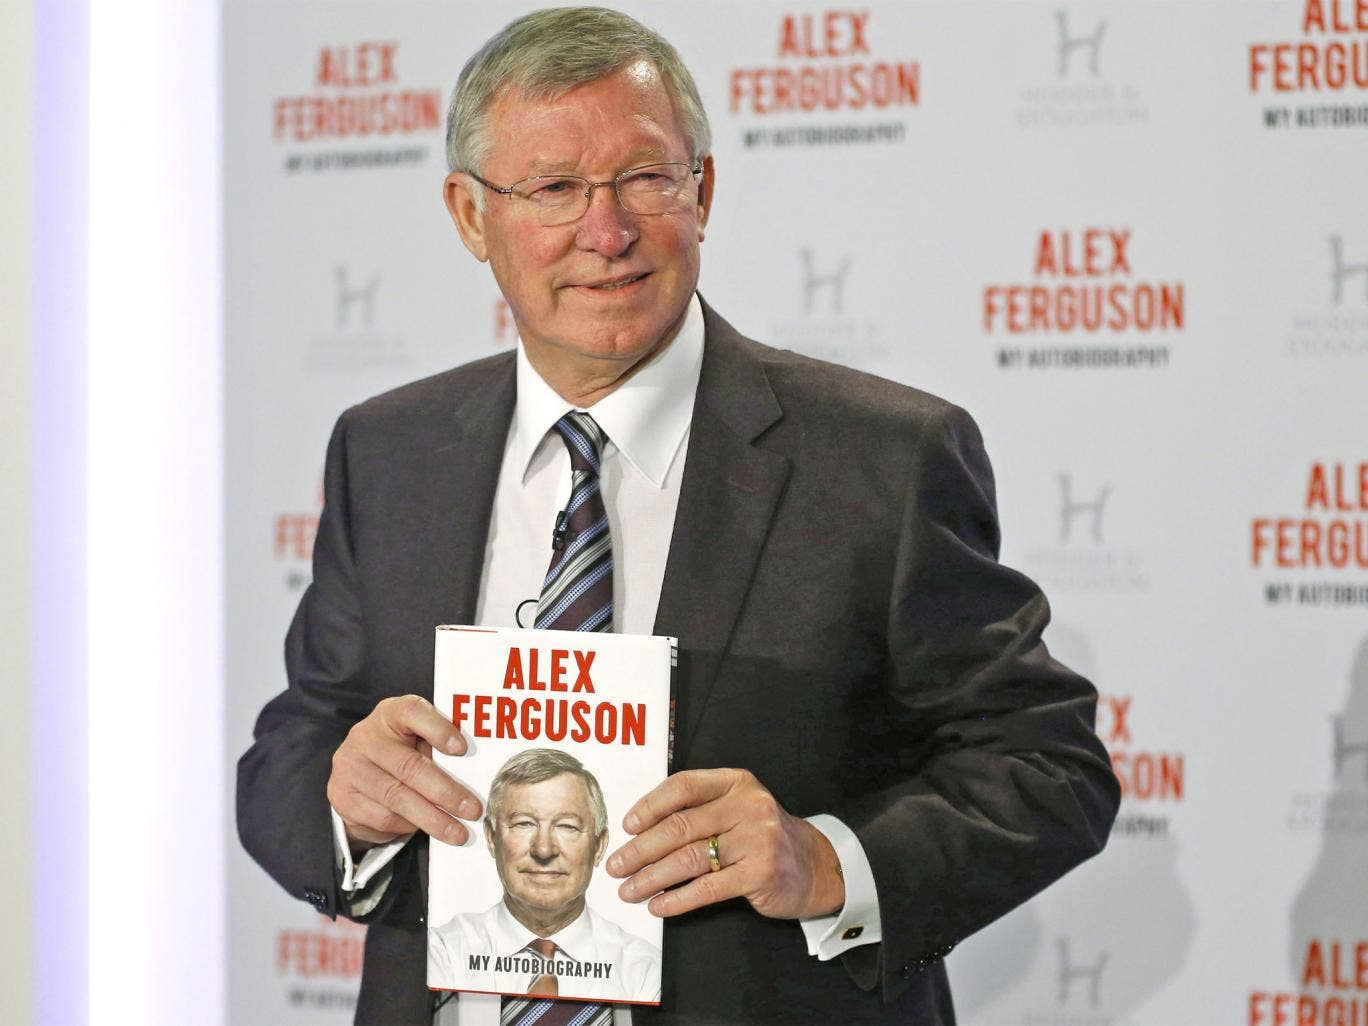 Sir Alex Ferguson during the launch of his autobiography in London